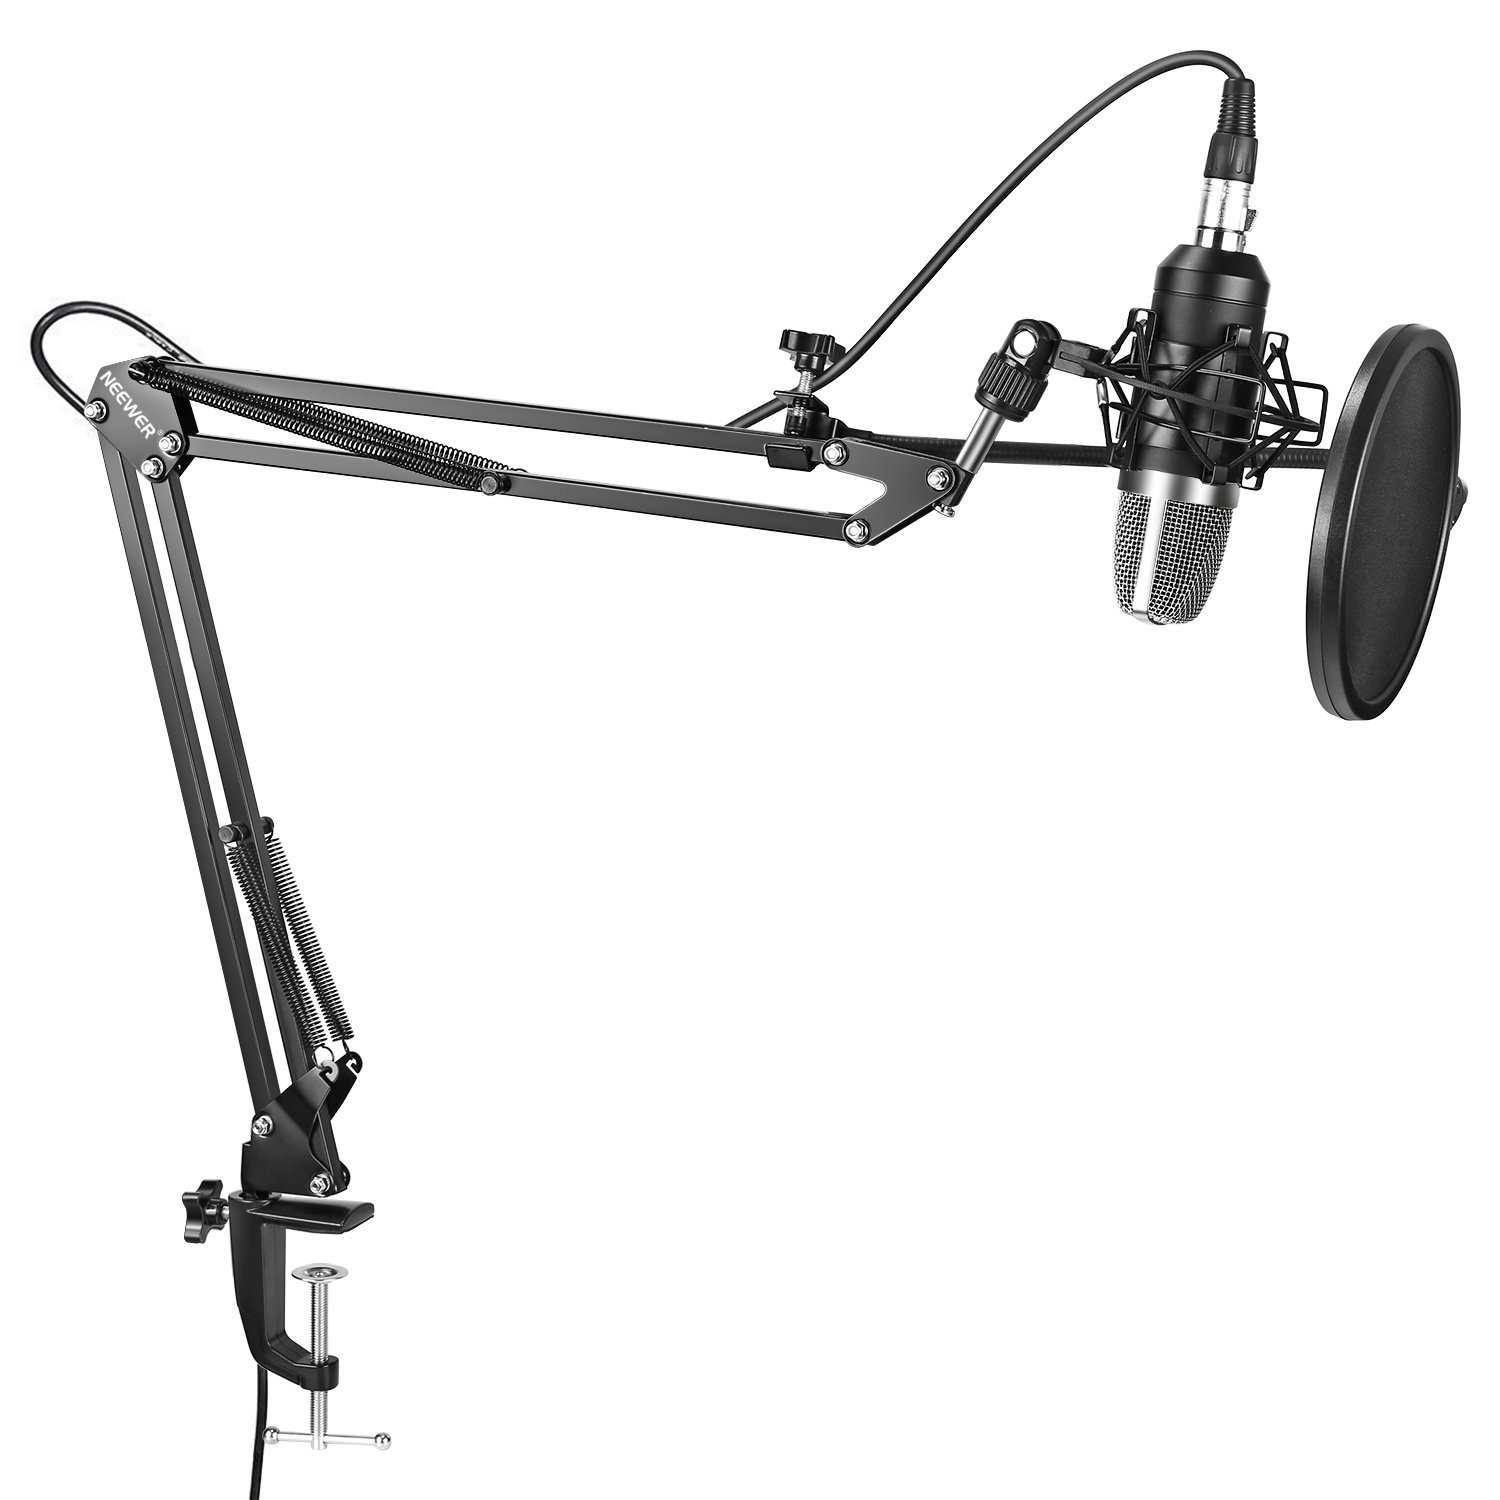 Neewer NW-7000 Professional Studio Condenser Microphone and Adjustable Suspension Scissor Arm Stand with Shock Mount, Pop Filter and Table Mounting Clamp Kit for Broadcasting and Sound Recording